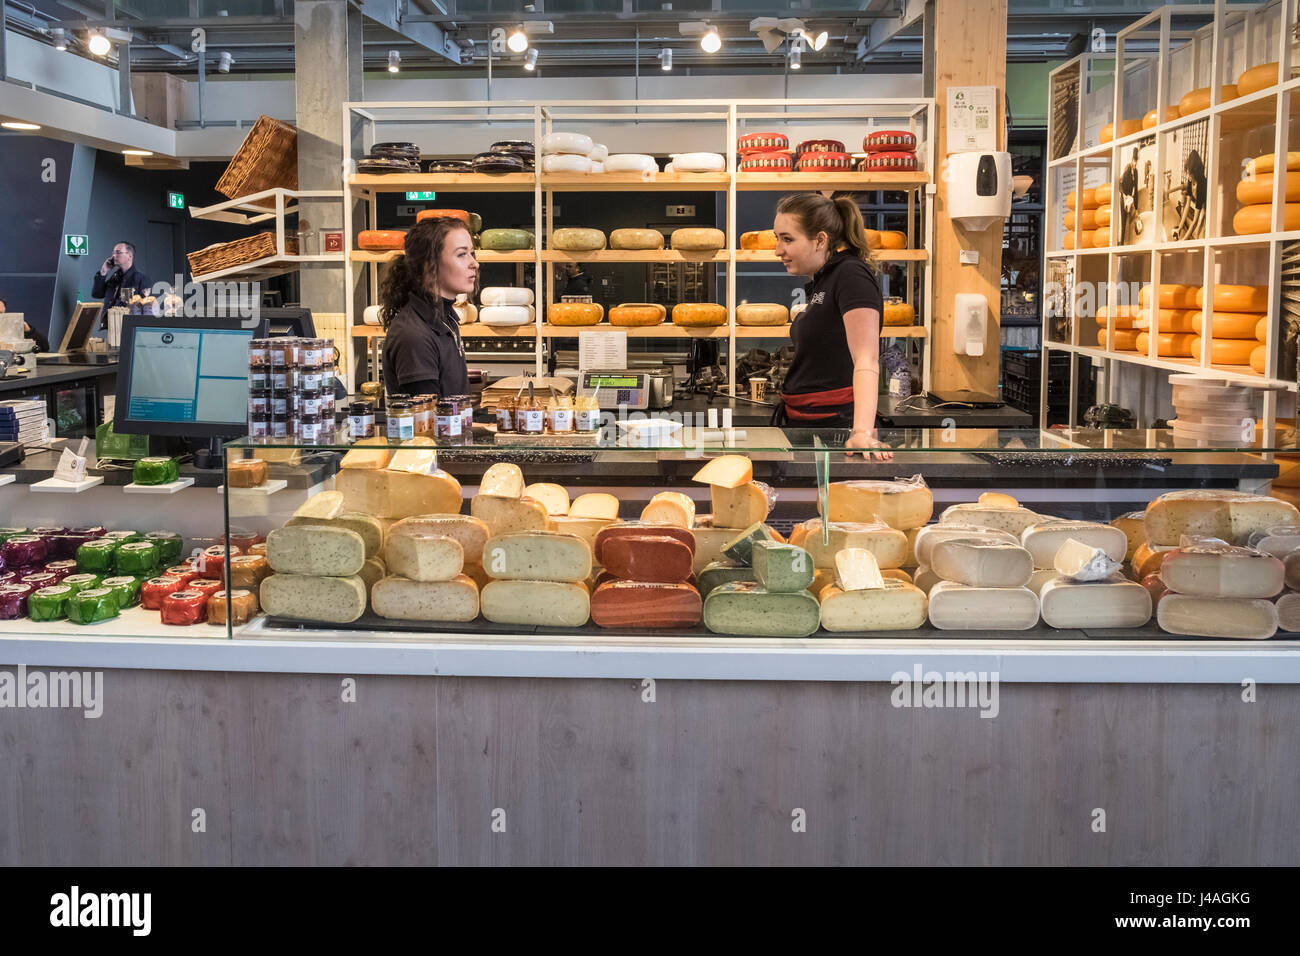 Cheese food stall inside the Markthal indoor food market building, Rotterdam, The Netherlands. - Stock Image